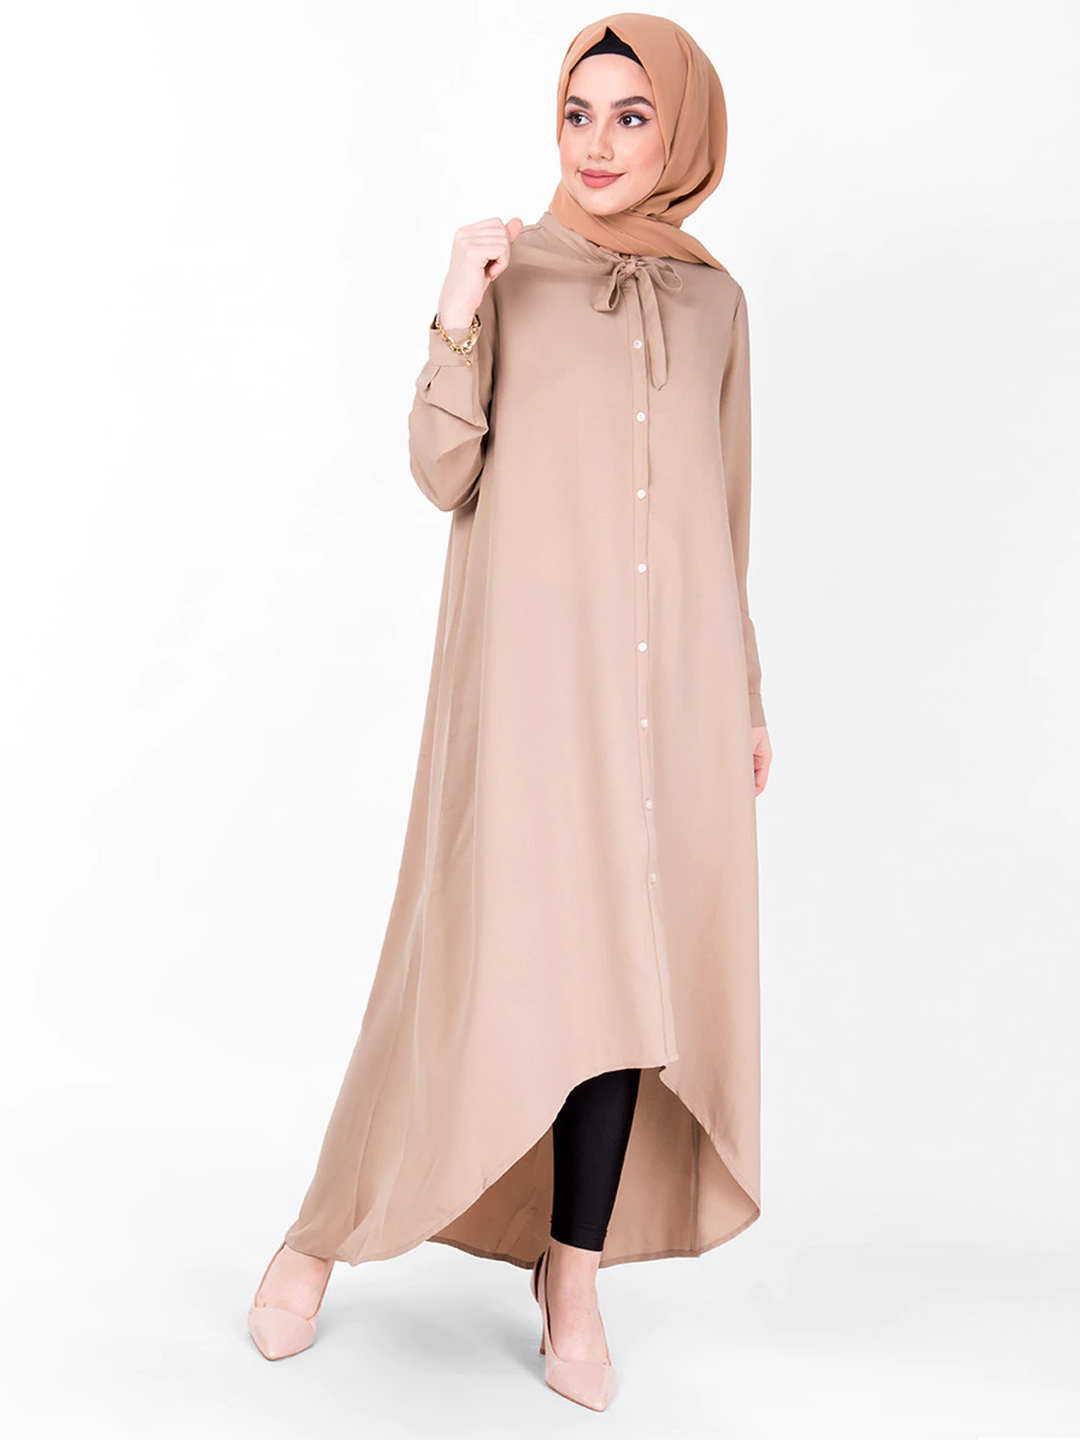 100% Polyester Tie Up High Low Shirt Dress In Beige